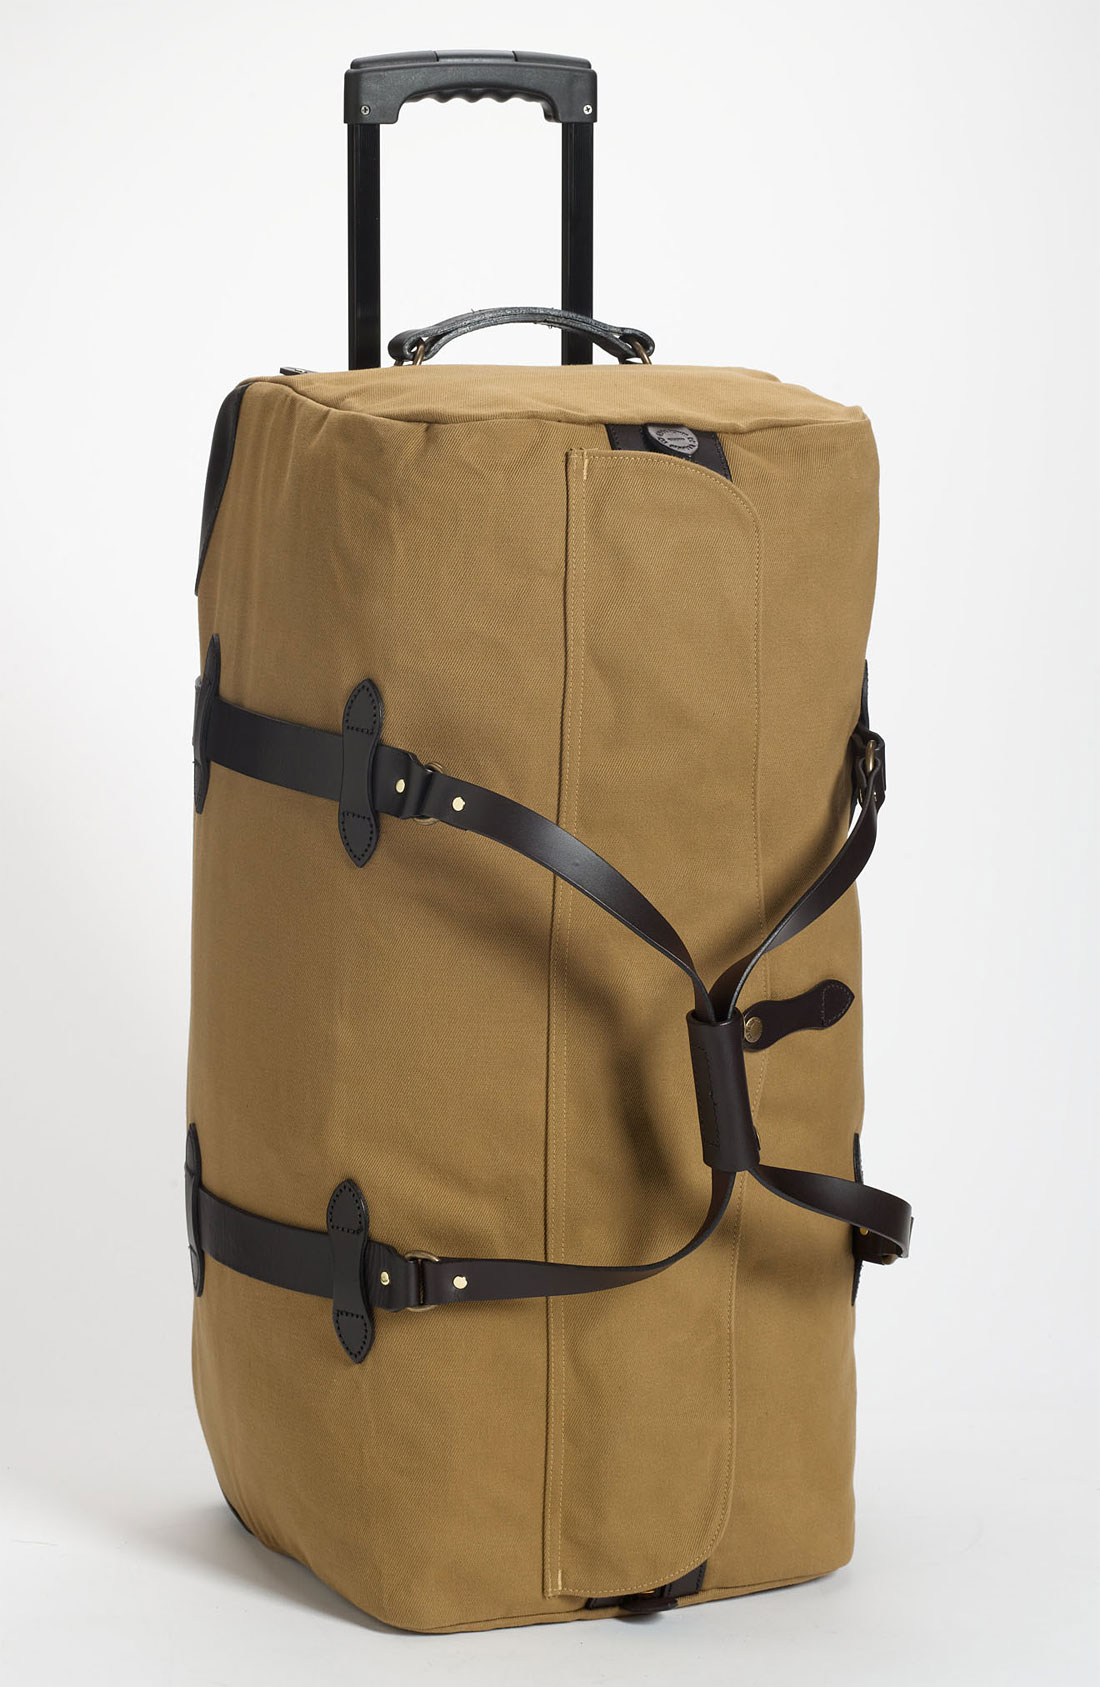 filson large wheeled duffle bag in beige for men tan lyst. Black Bedroom Furniture Sets. Home Design Ideas